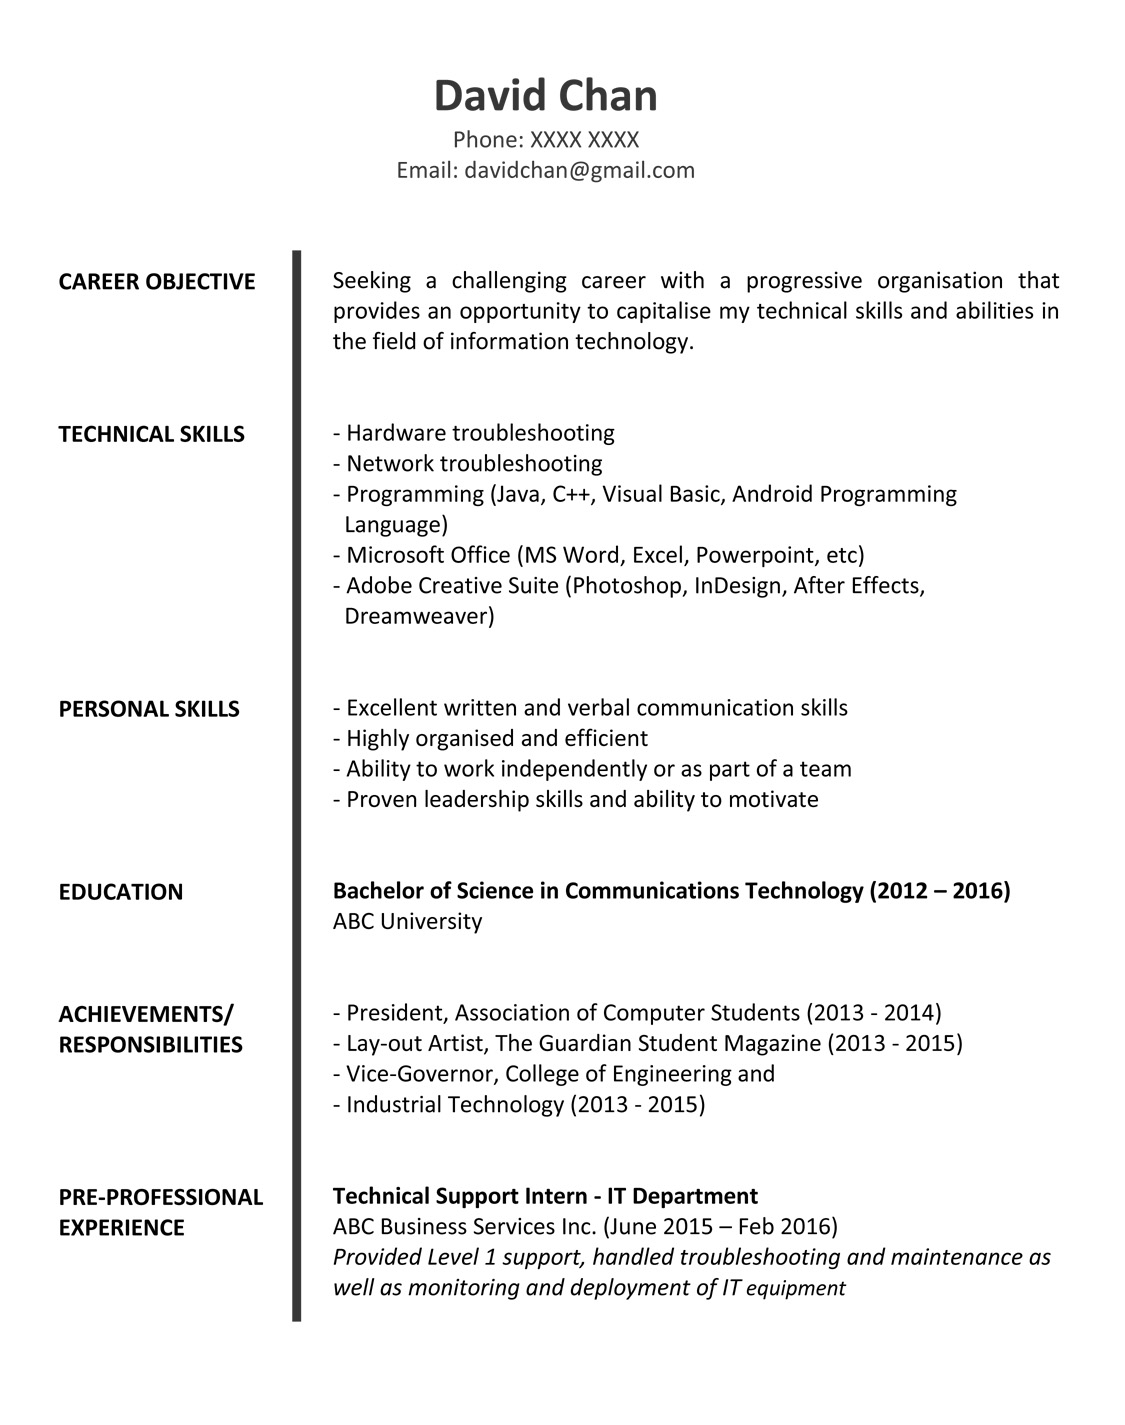 Sample Resume Newly Registered Nurse Without Experience Middle East Jobs Job Search Job Vacancies Gulfnaukri 100 Resume Sample In The Philippines Sample Resume